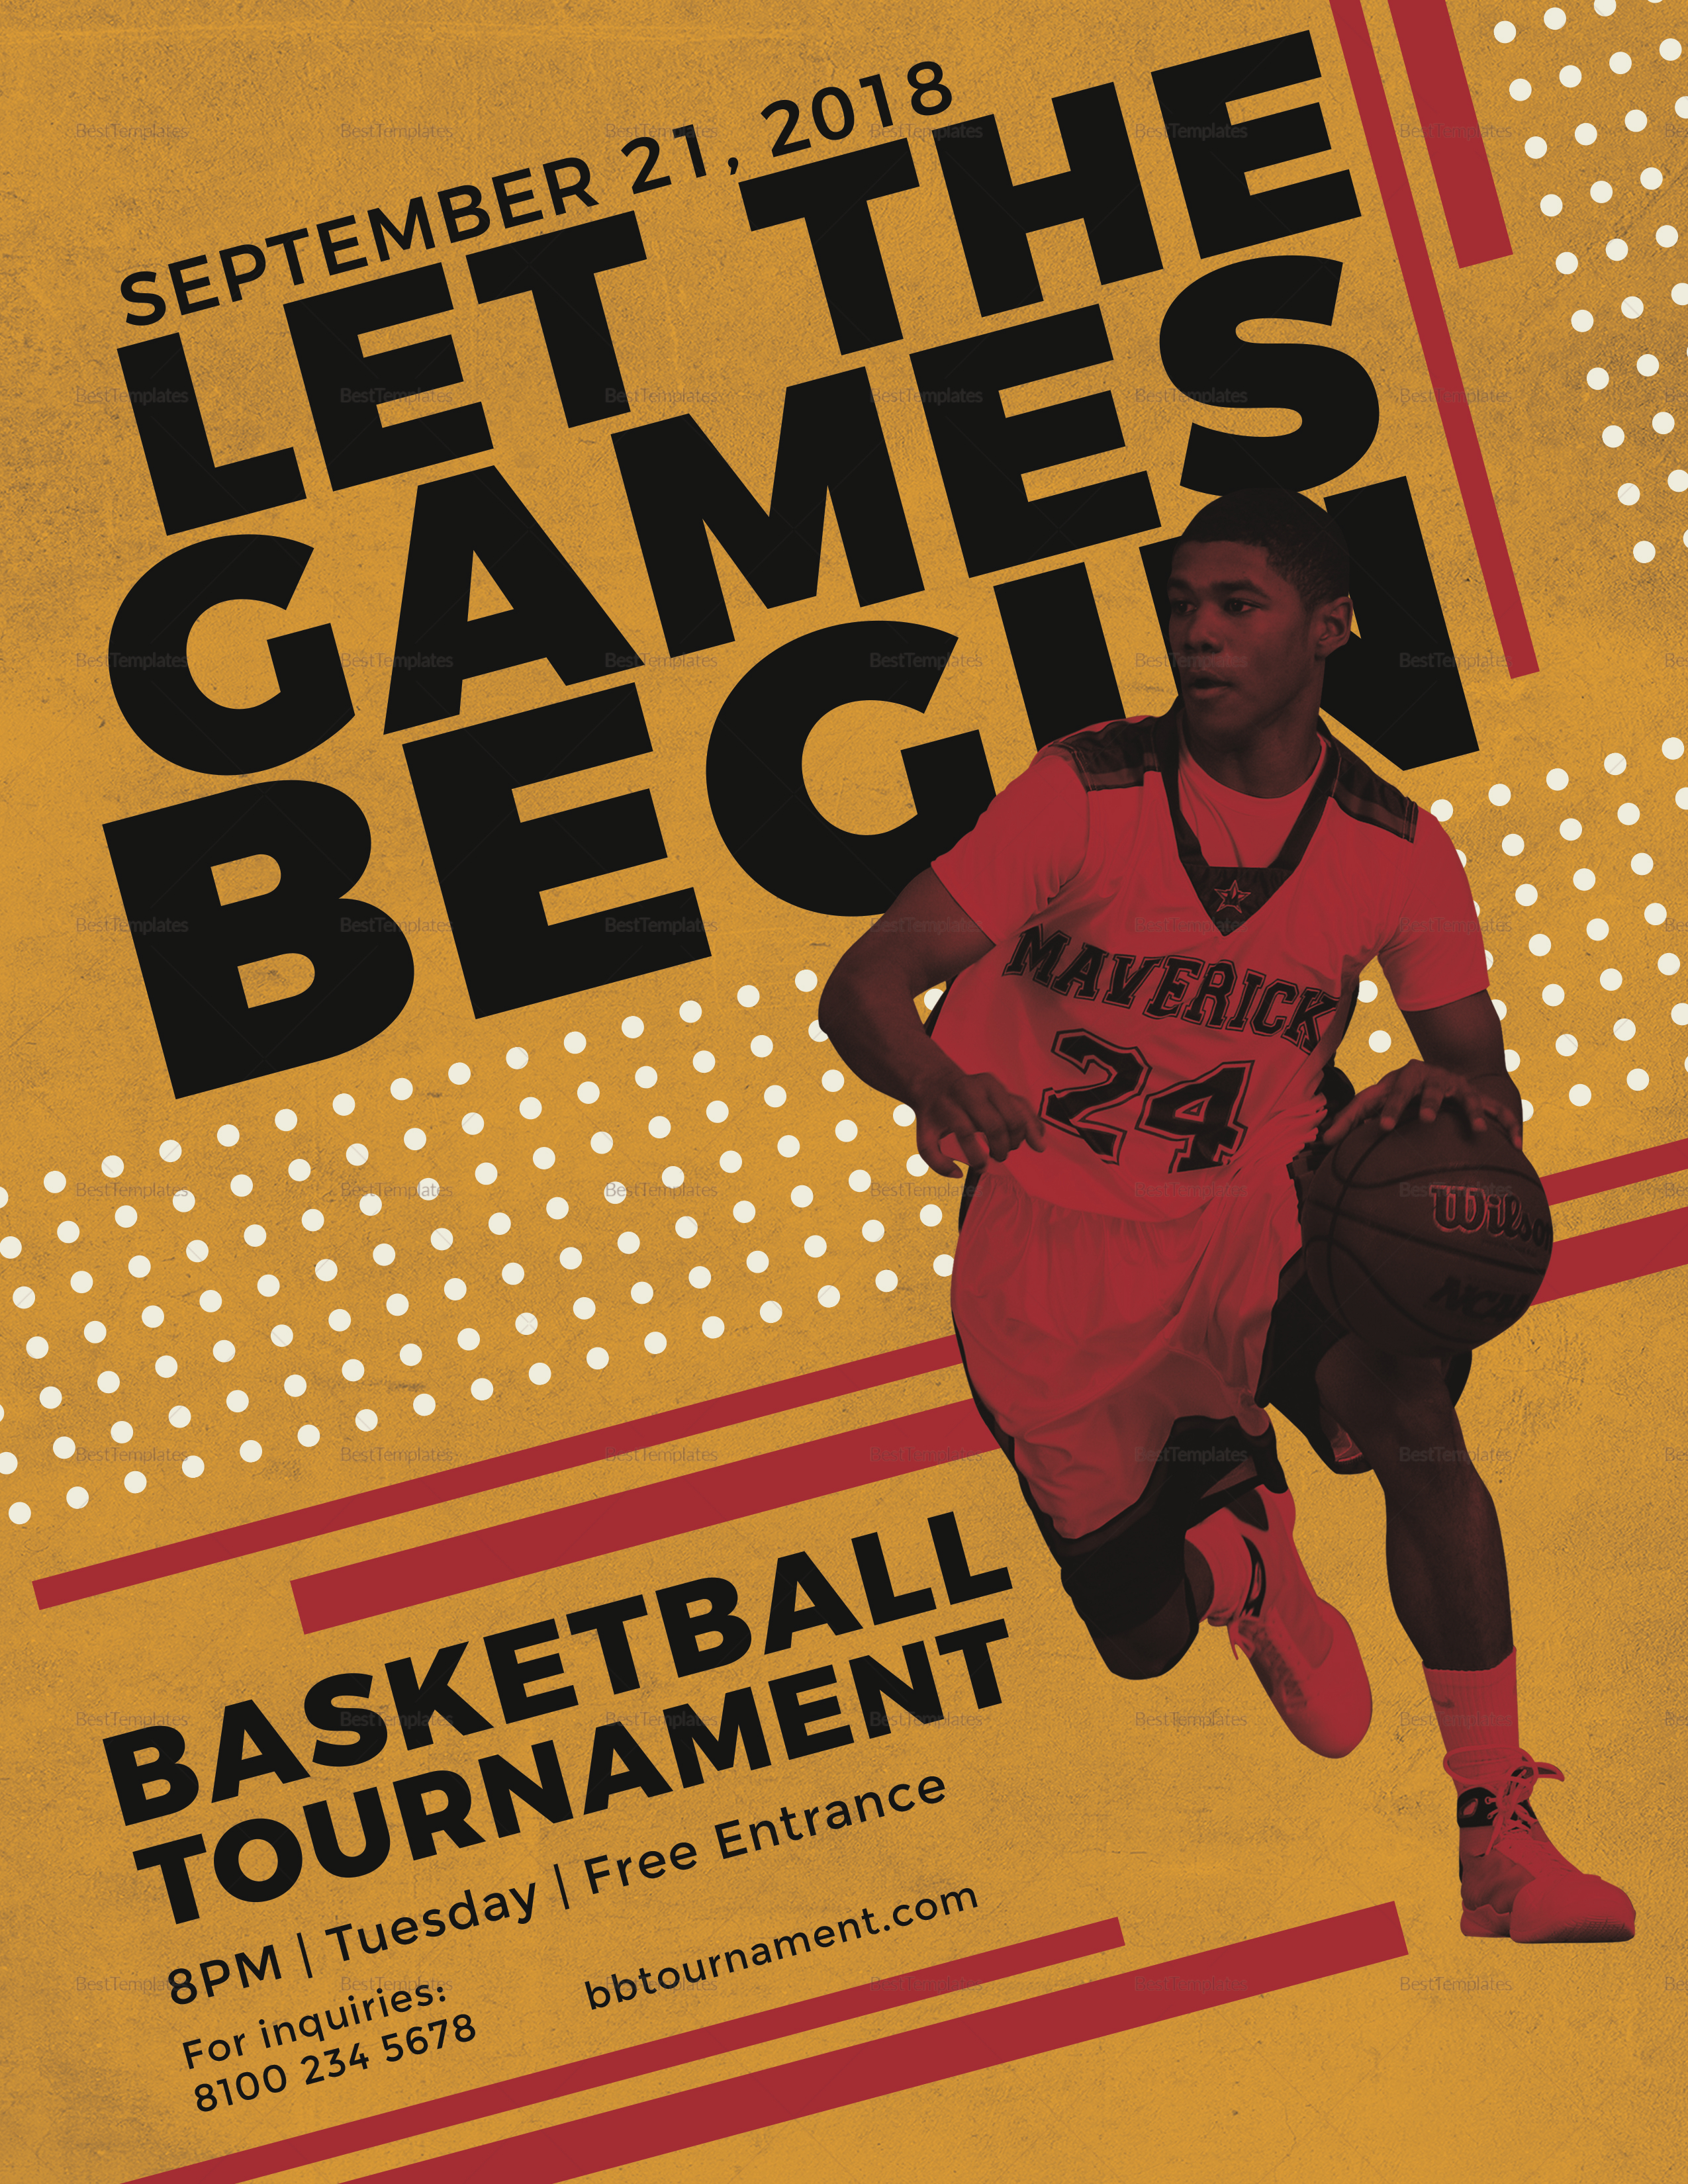 basketball tournament flyer design template in psd word publisher